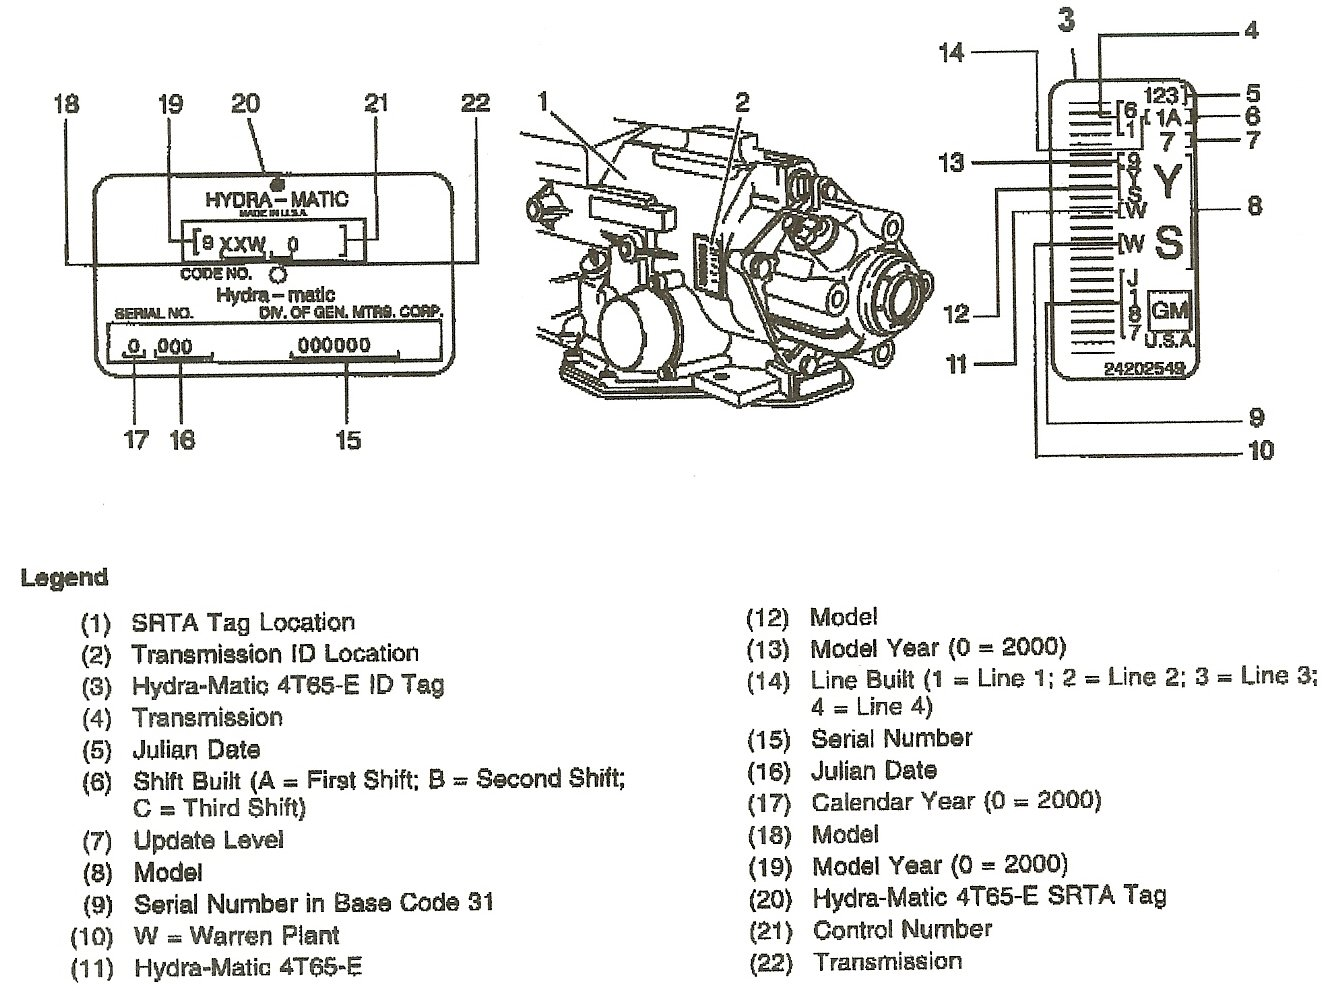 2008 Impala Transmission Wiring Diagram | Wiring Library